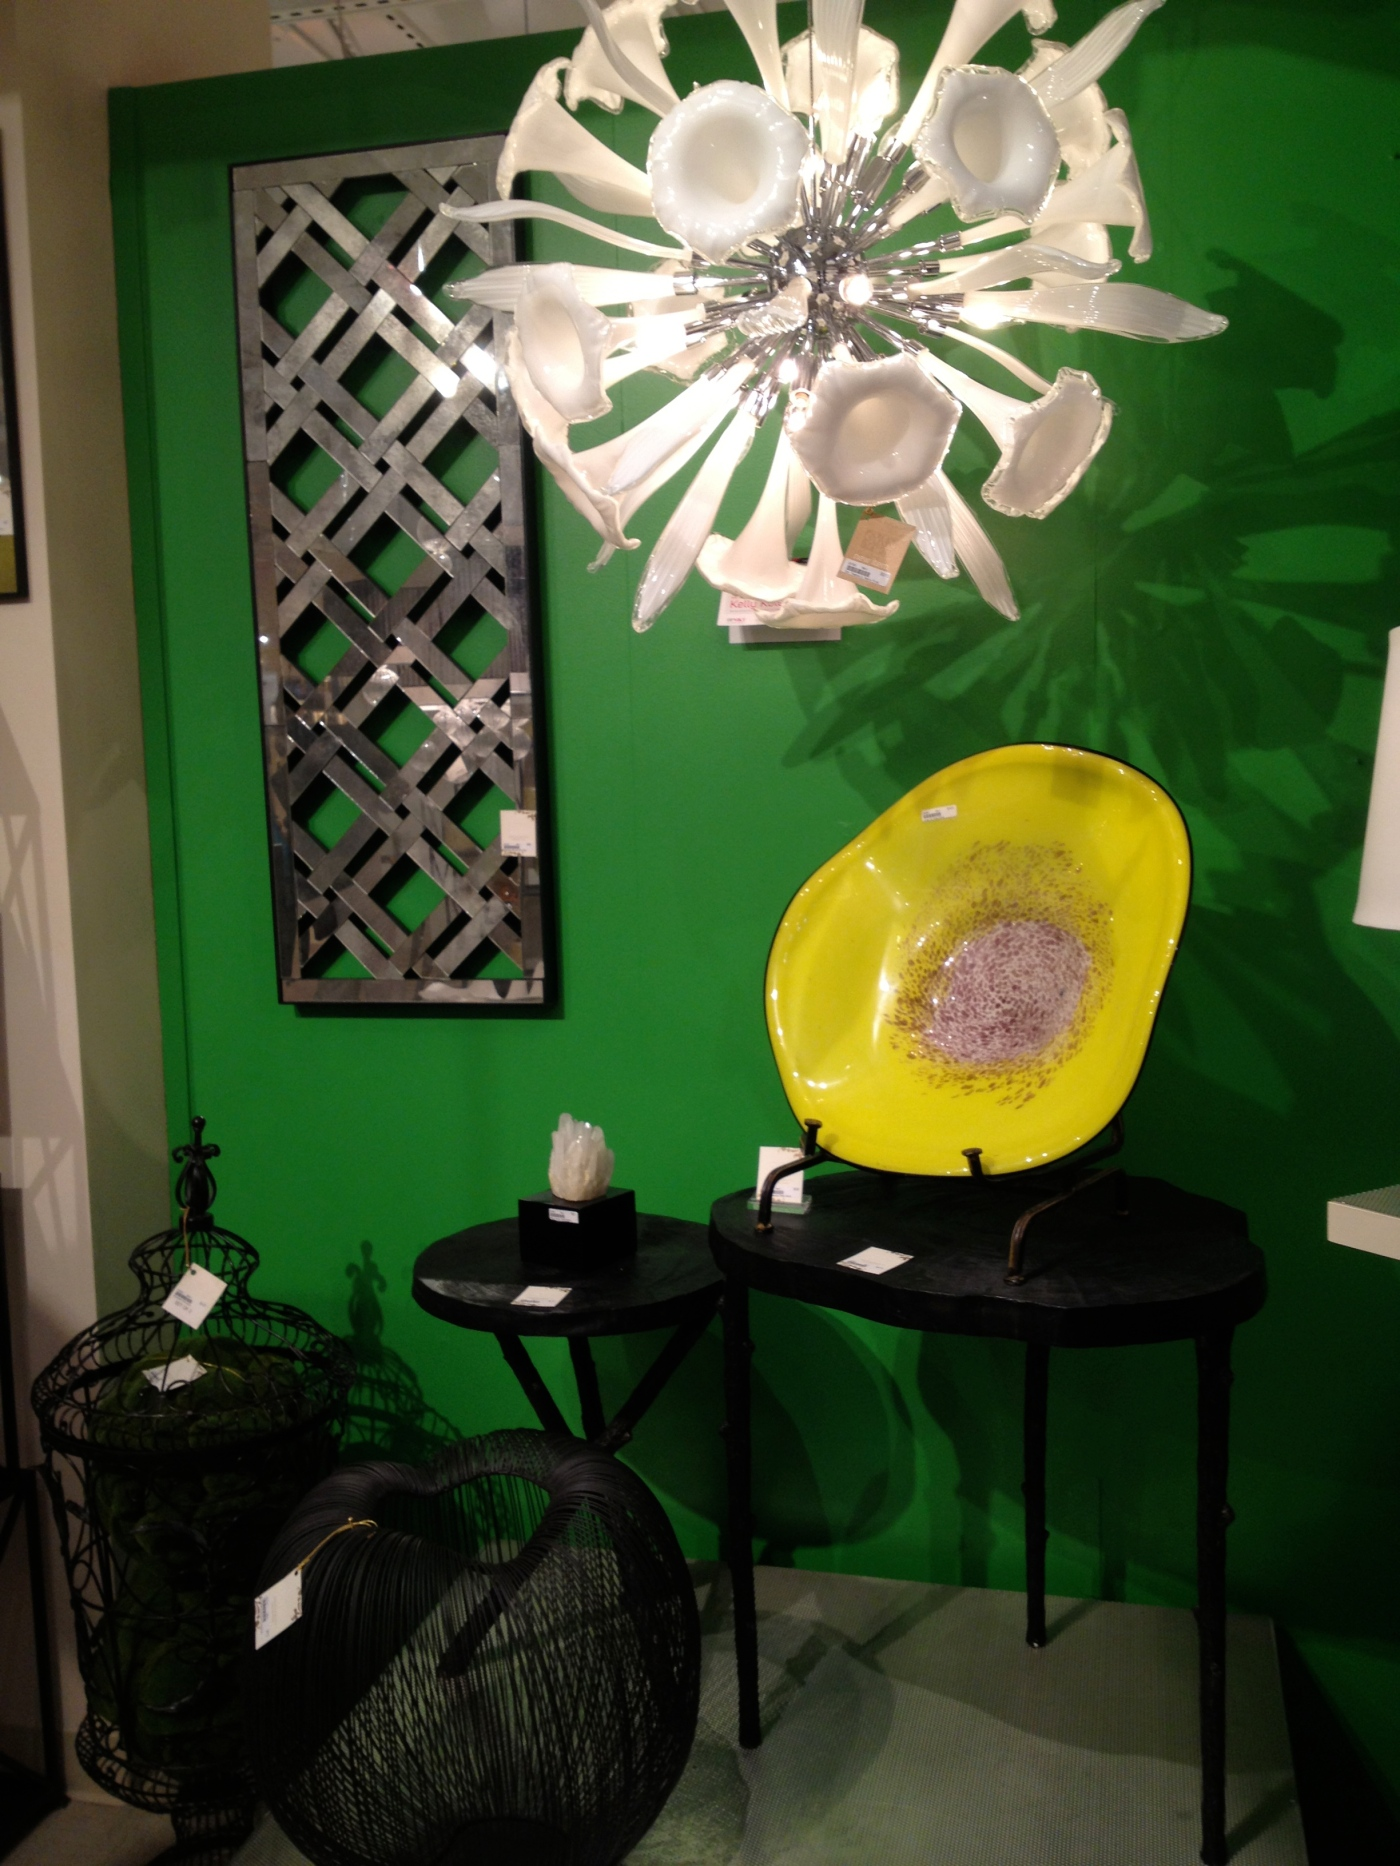 Cyan Design - High Point Market Spring 2013 #hpmkt